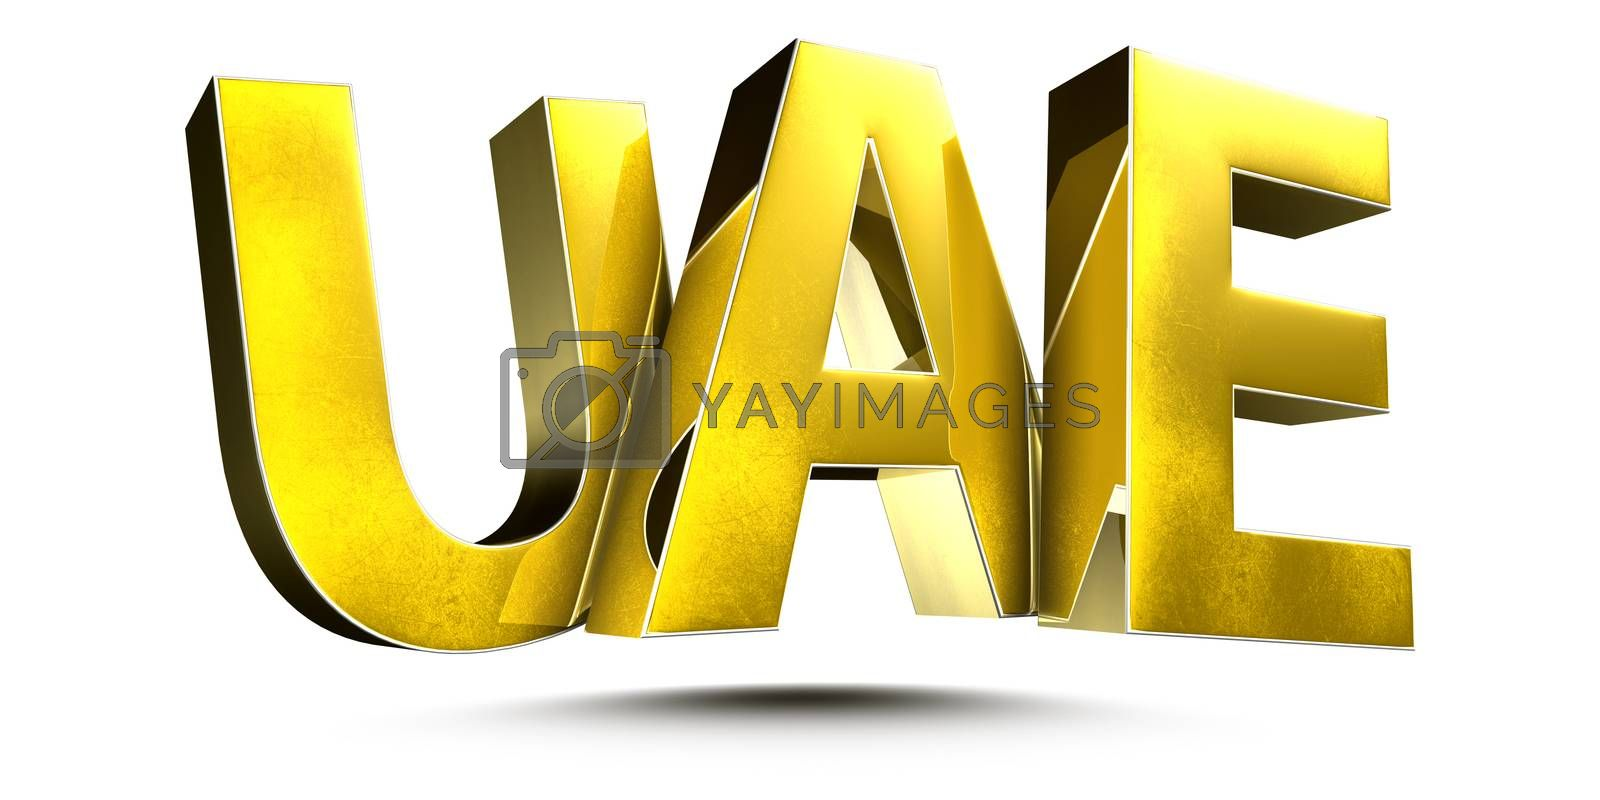 3D illustration UAE Gold isolated on a white background.(with Clipping Path)